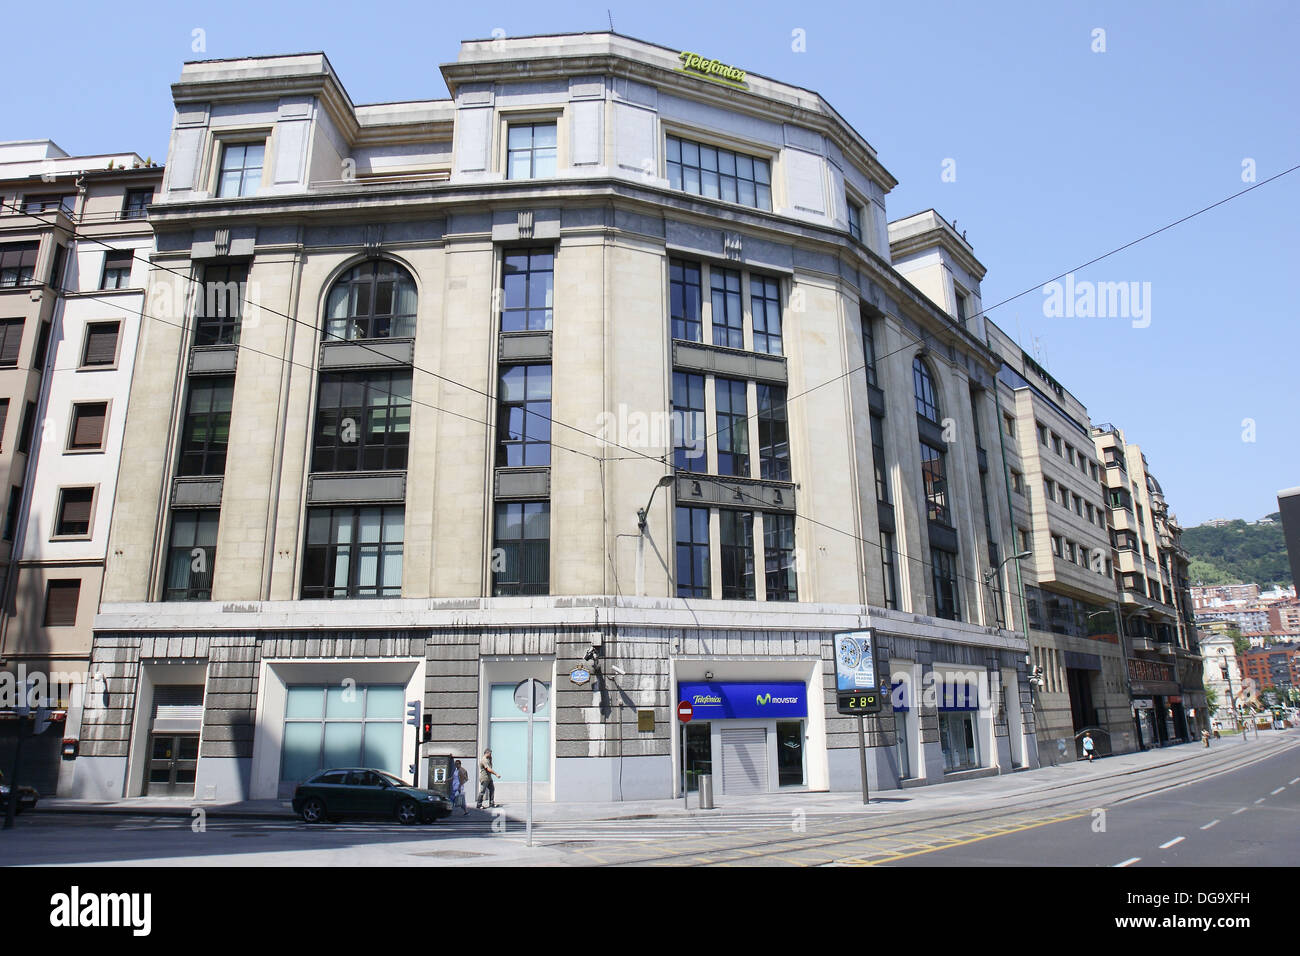 Telefonica (Spanish telecommunication company) building in Calle Buenos Aires, Bilbao. Biscay, Basque Country, Spain - Stock Image